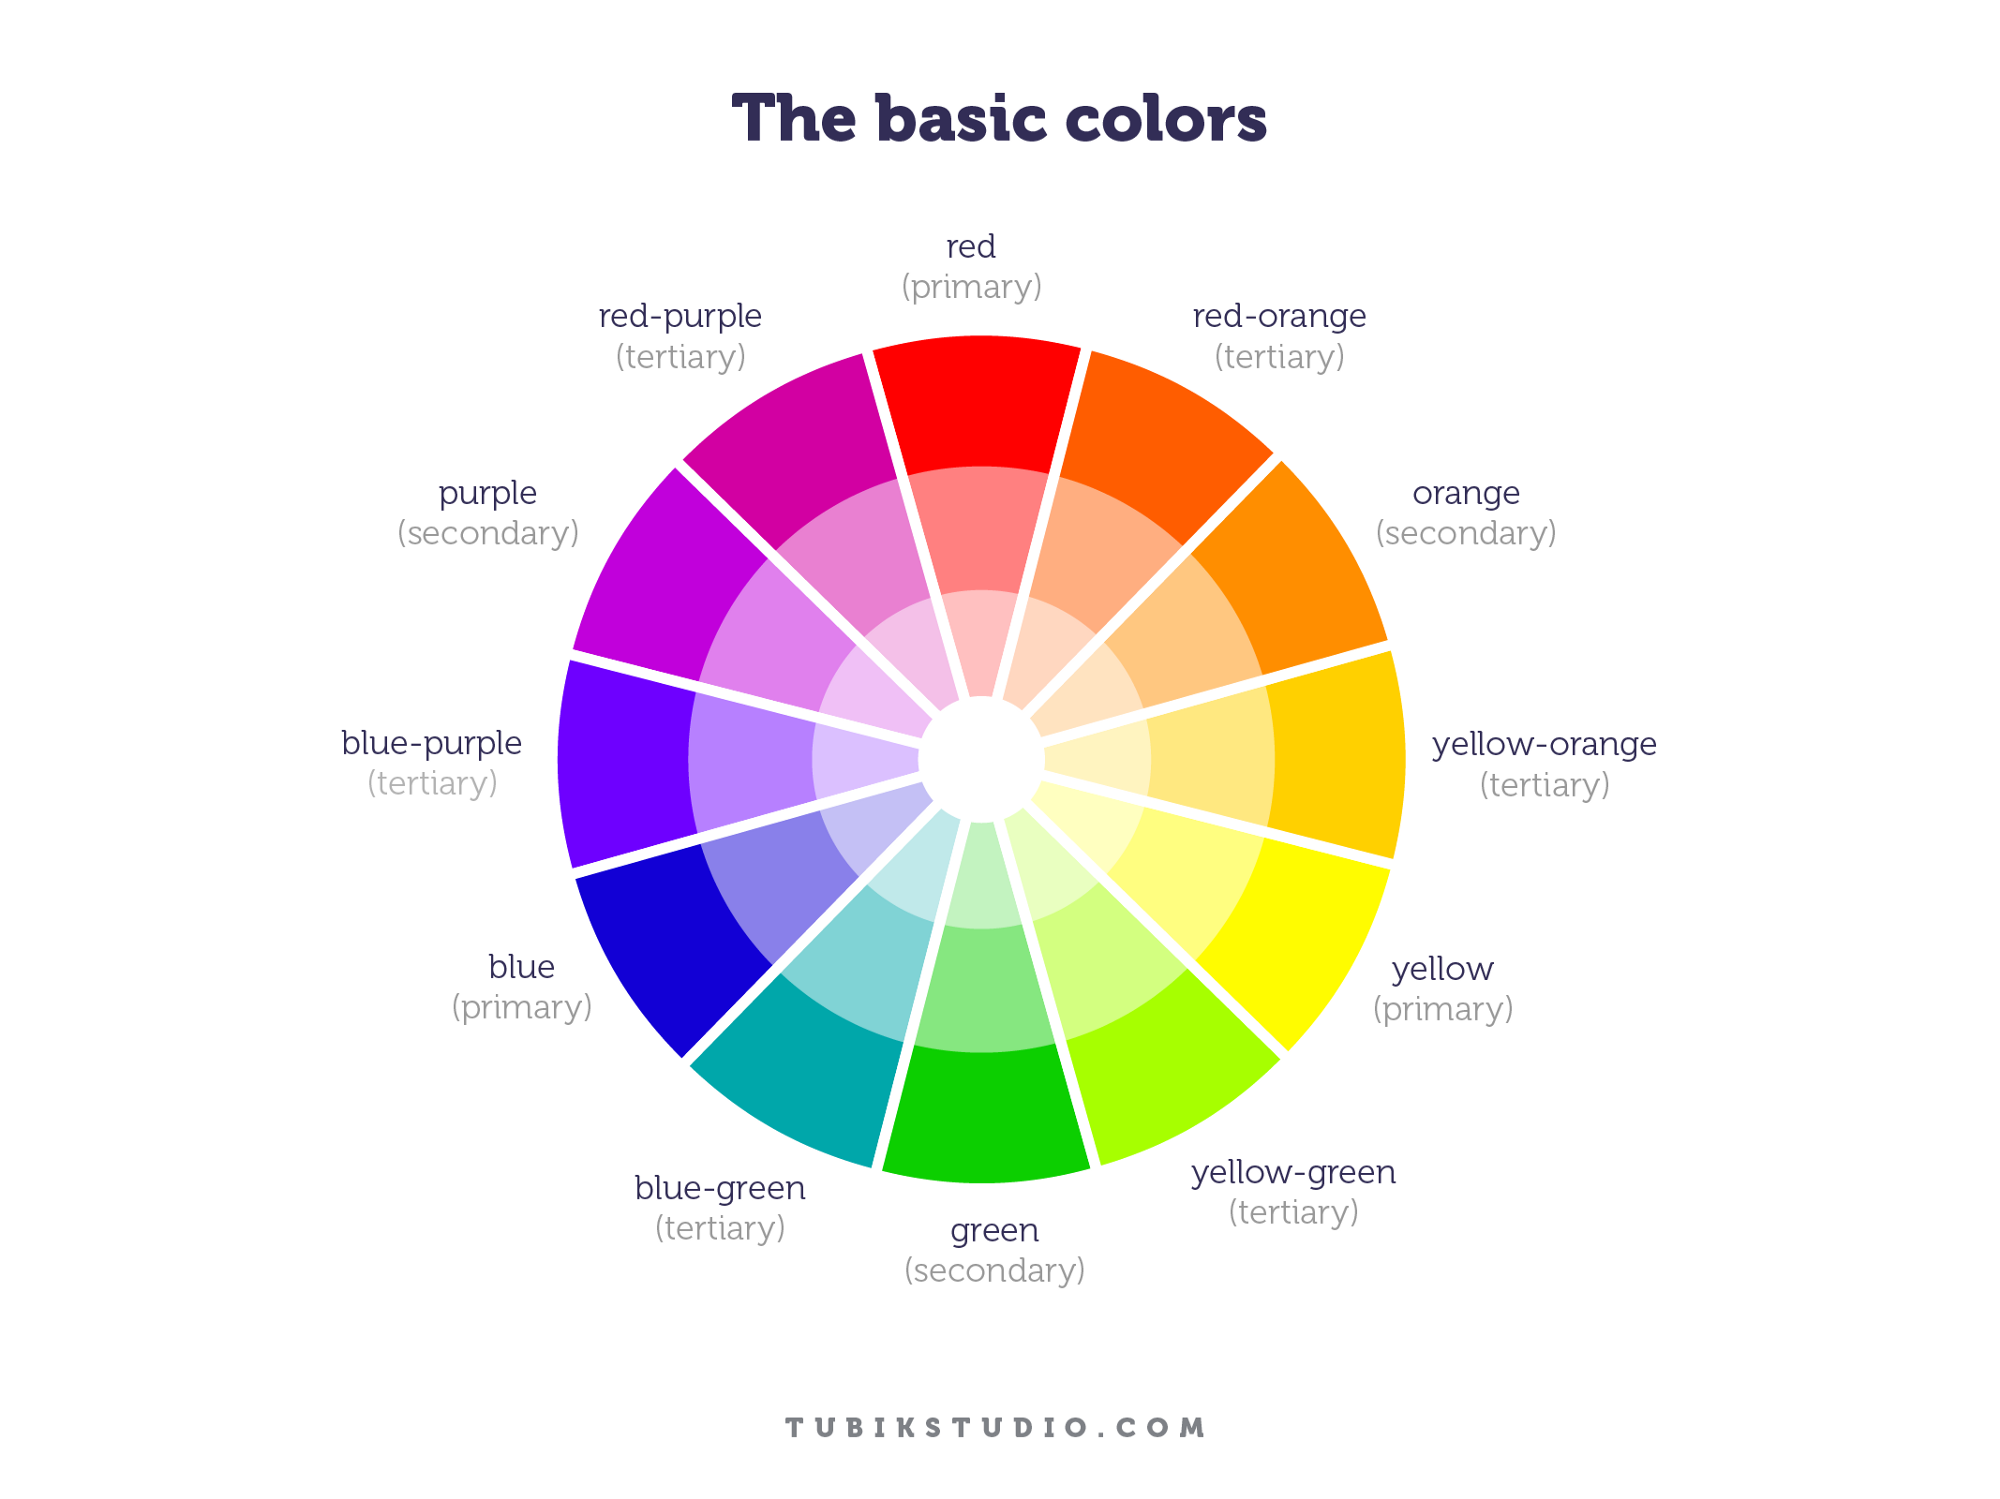 Basic colors, their effect on humans